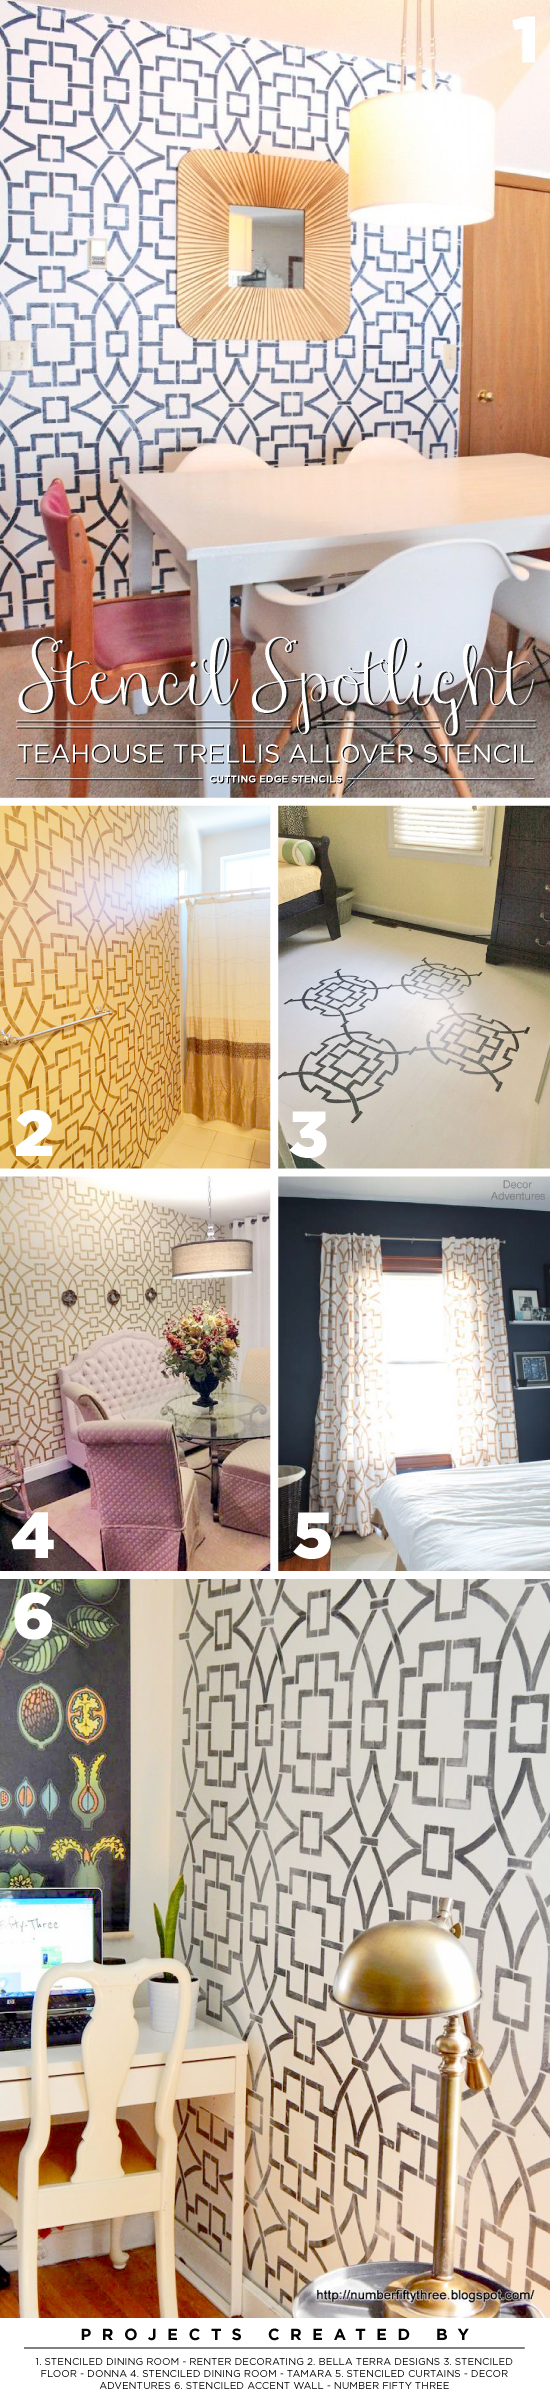 Stencil Spotlight Tea House Trellis